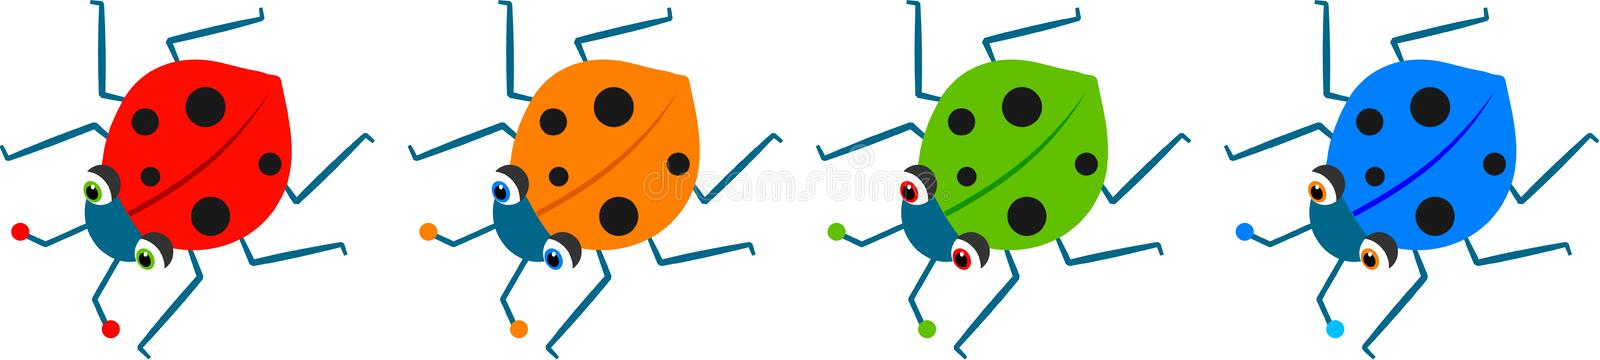 Ladybugs libre illustration